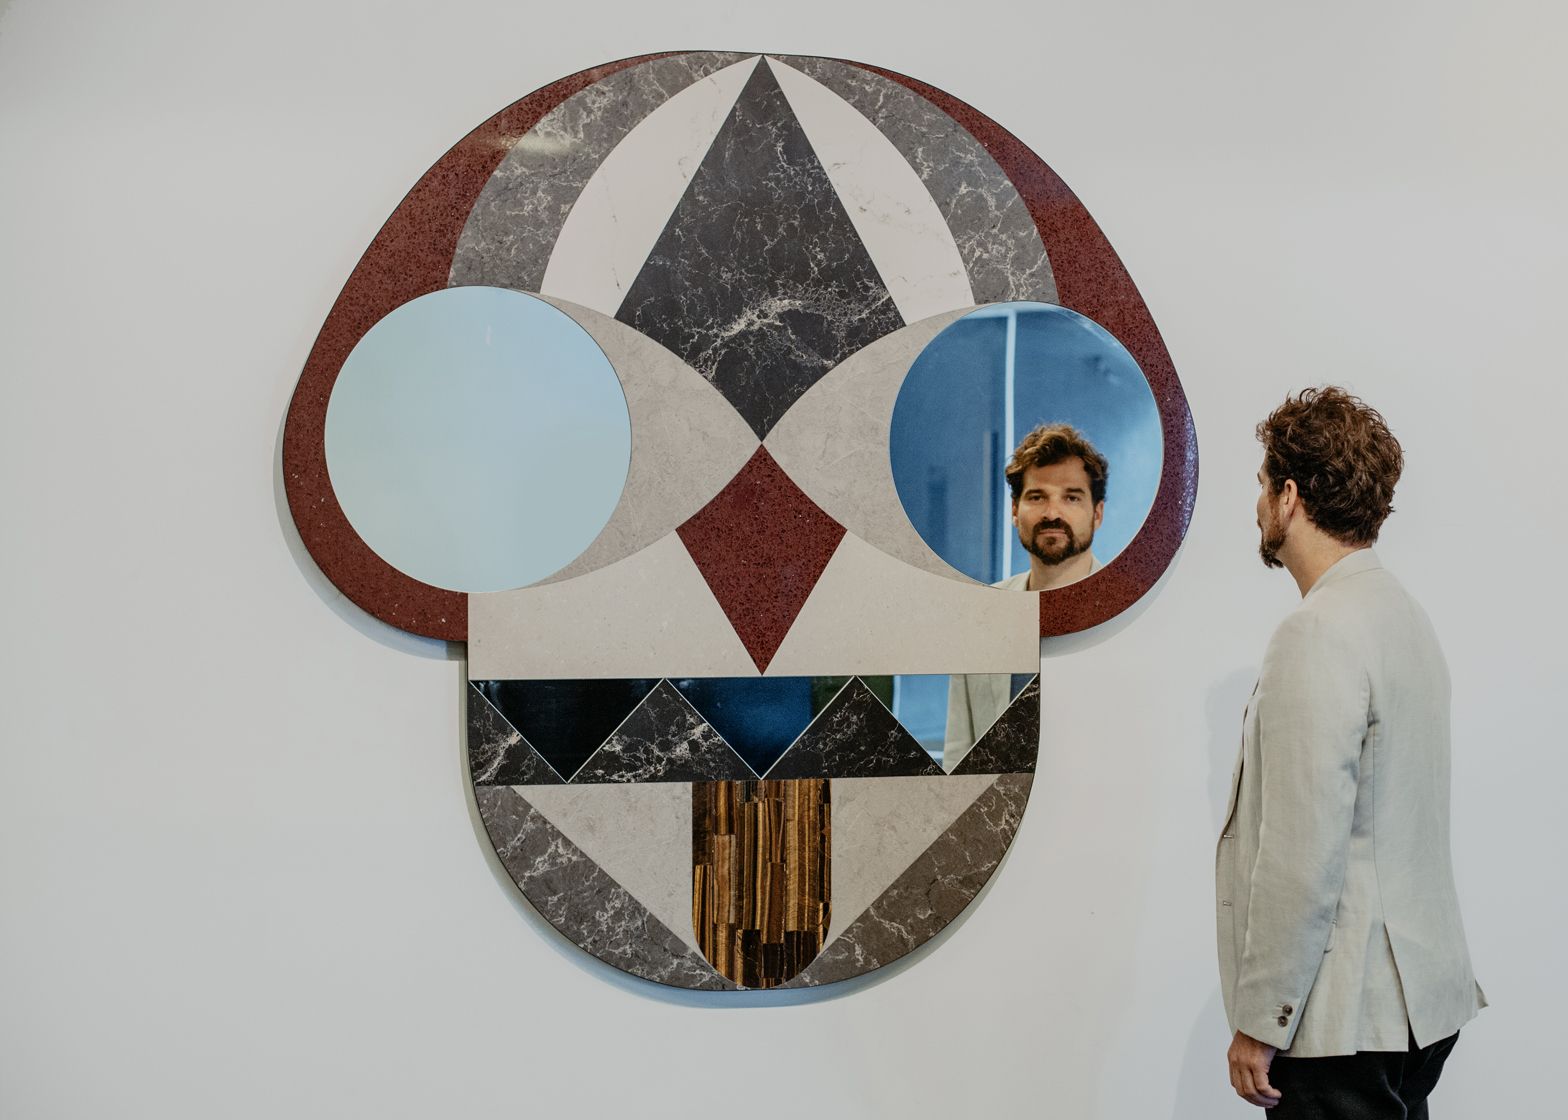 Mask mirror by Jaime Hayon